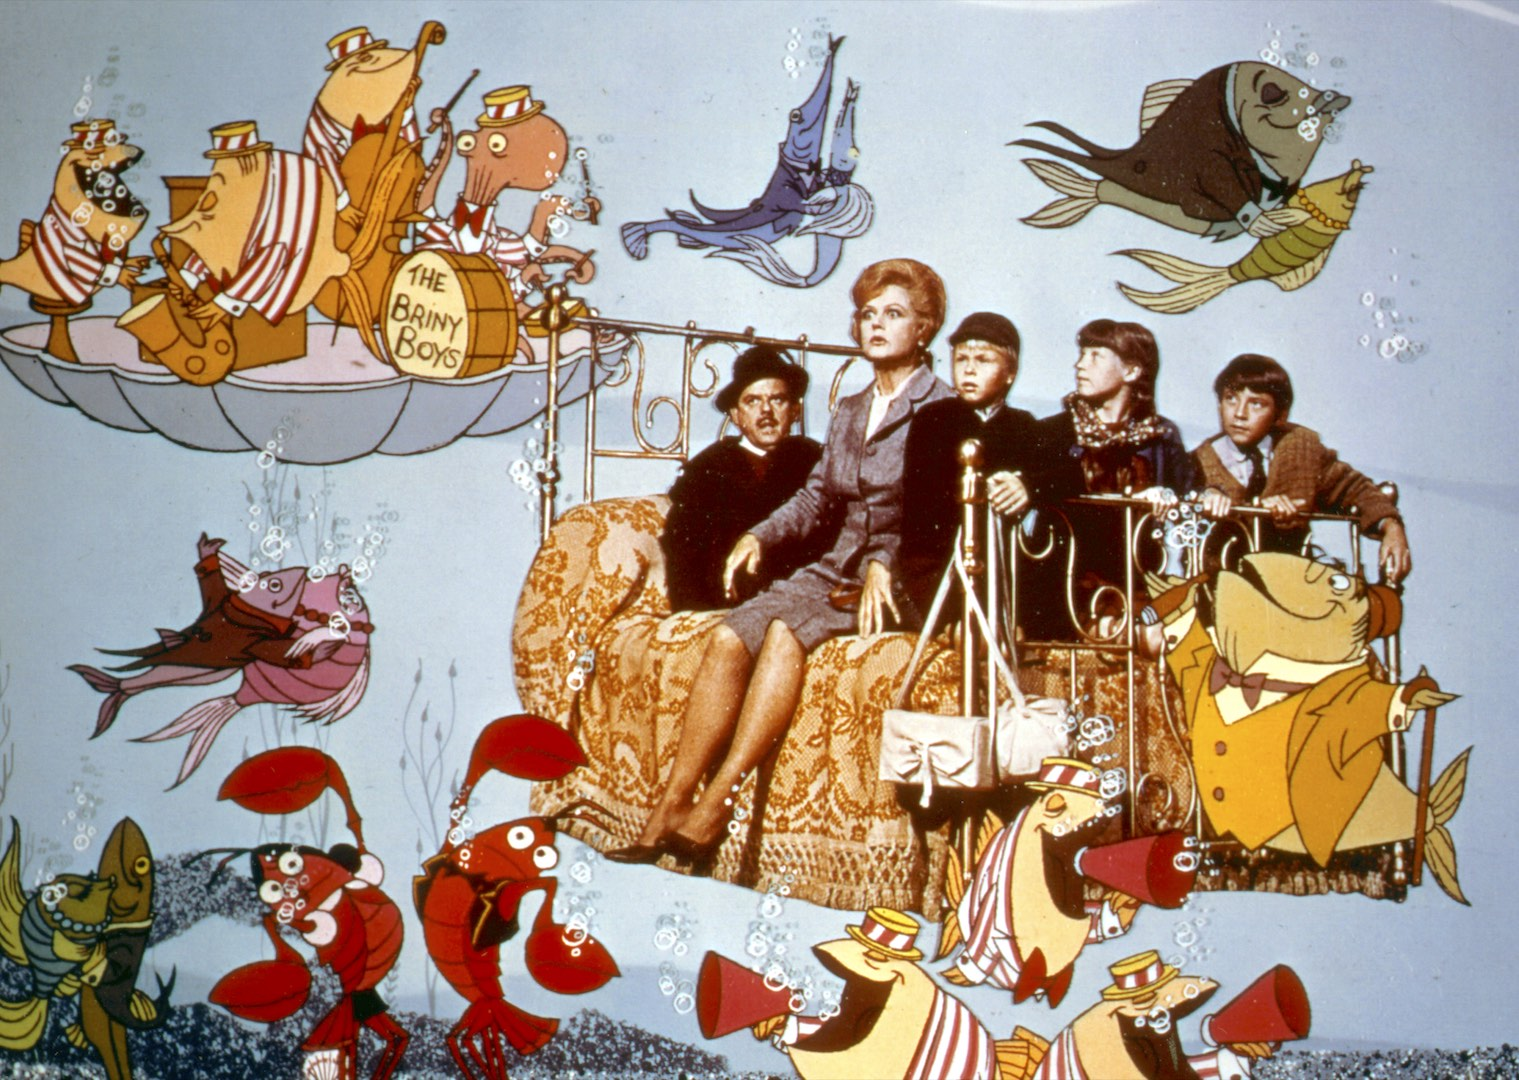 Cinemoments: Bedknobs and Broomsticks